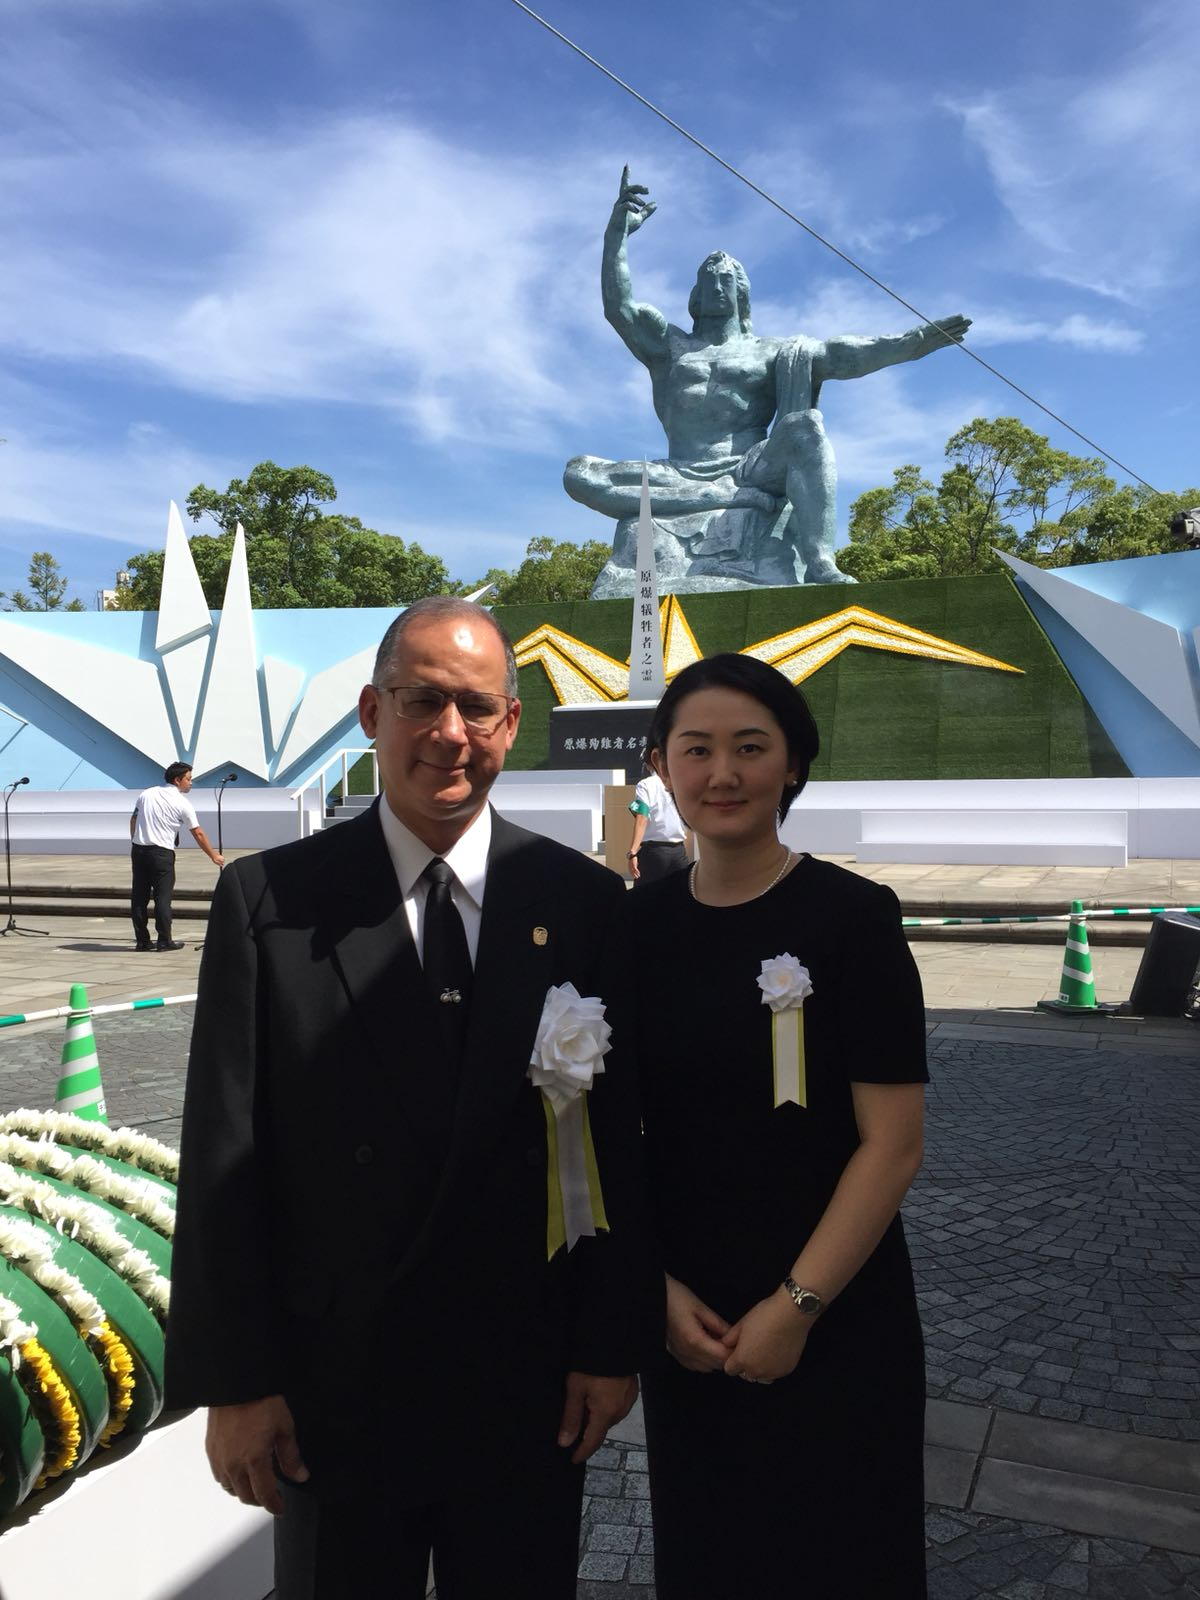 Ambassador Diaz with his wife Ayana Hatada Diaz in the Peace Memorial Park of Nagasaki city, on the occasion of the Ceremony in memory of the Atomic Bomb victims.